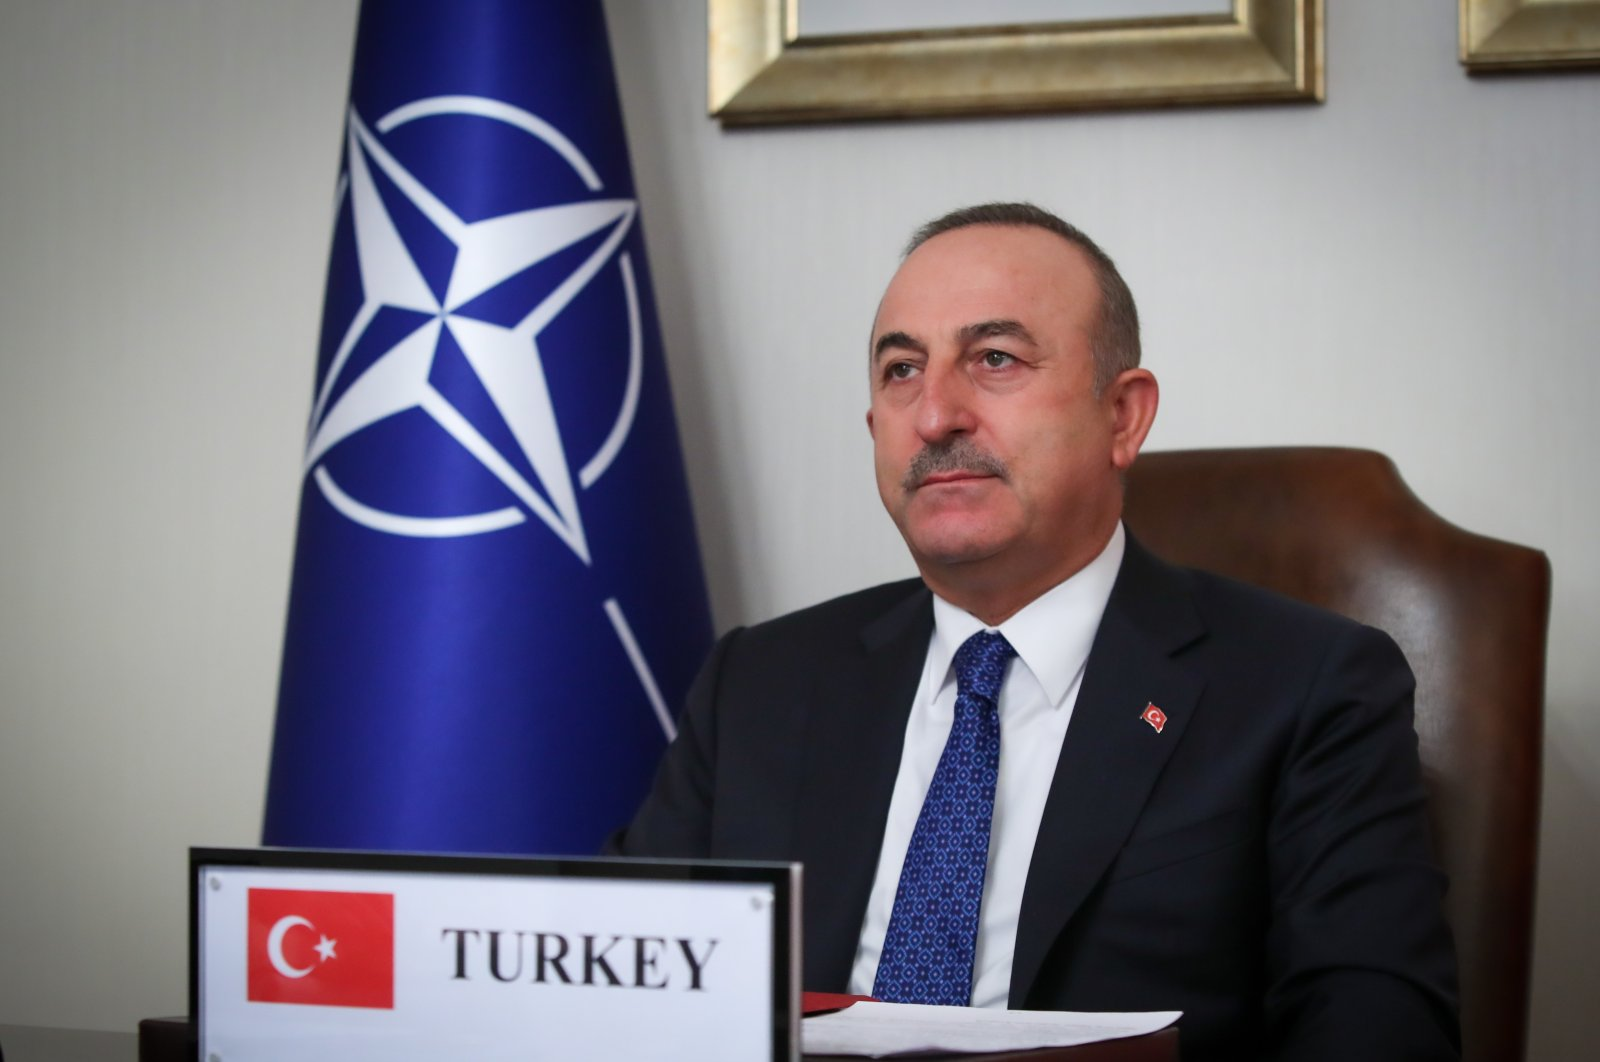 Foreign Minister Mevlüt Çavuşoğlu speaks at the NATO foreign ministers' meeting via videoconference, in Ankara, Dec. 1, 2020. (AA Photo)